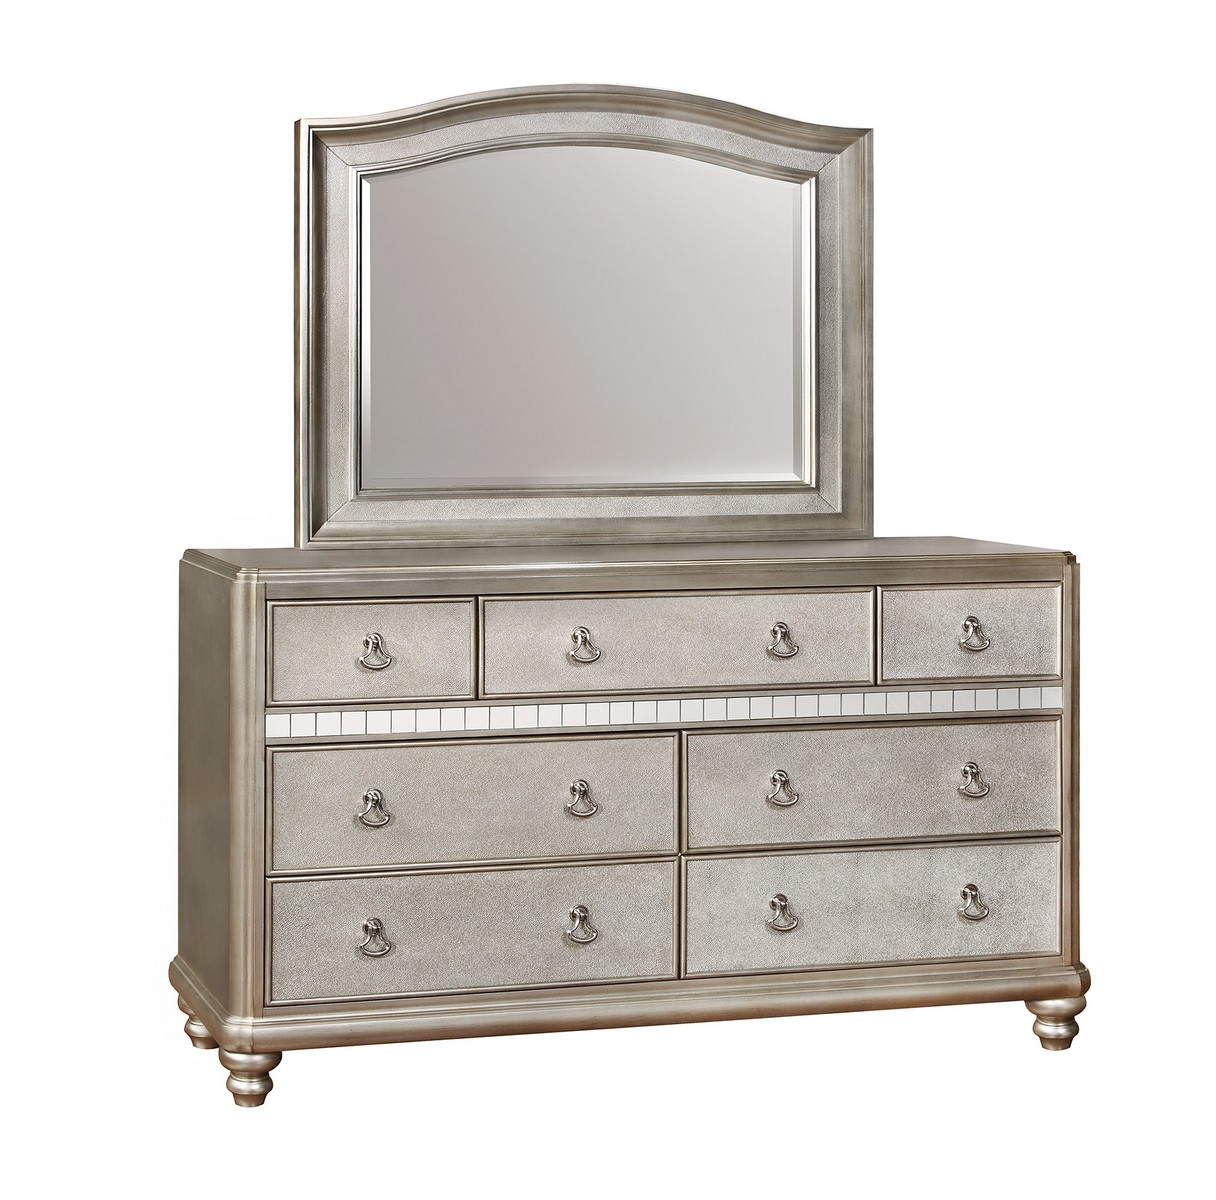 Coaster Bling Game Dresser - Metallic Platinum